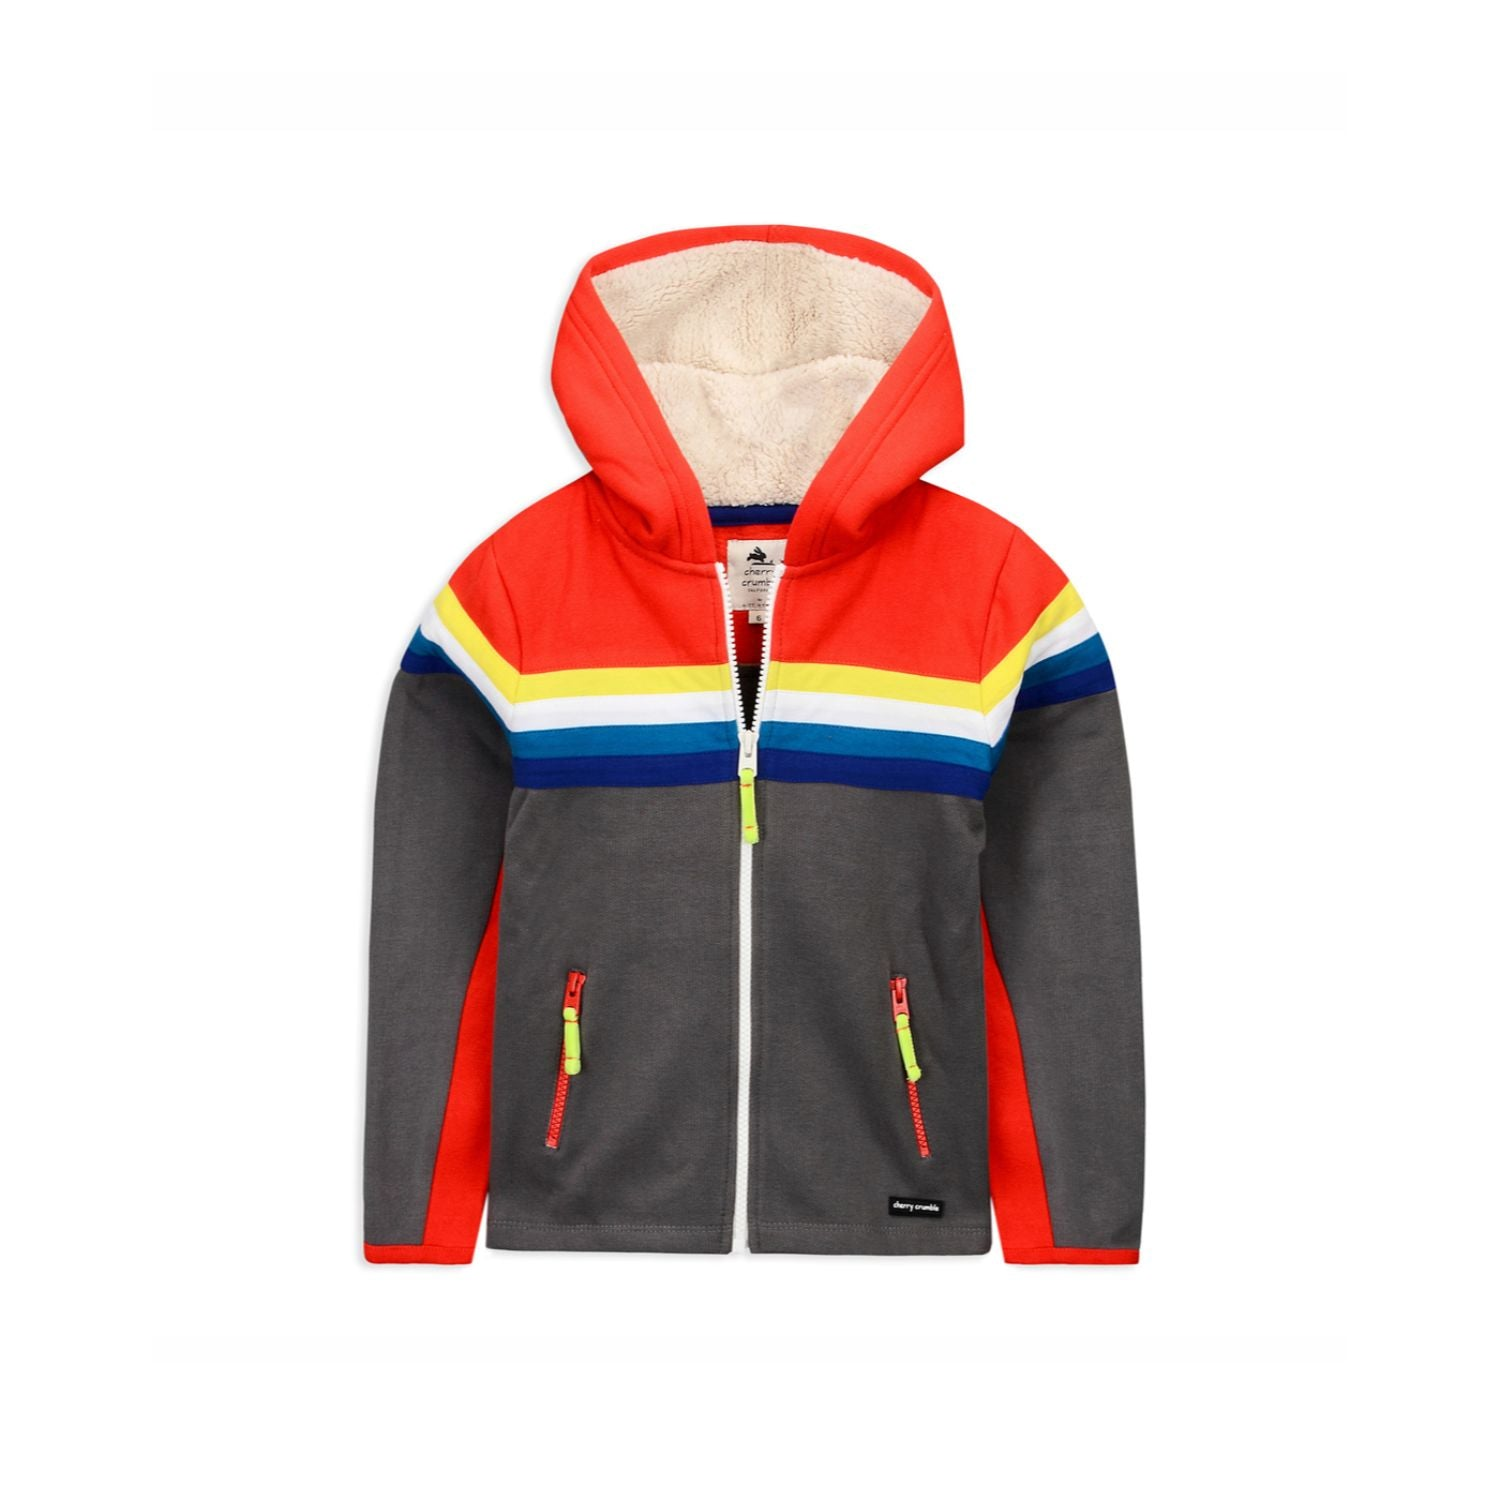 Rainbow Sweatshirt for kids